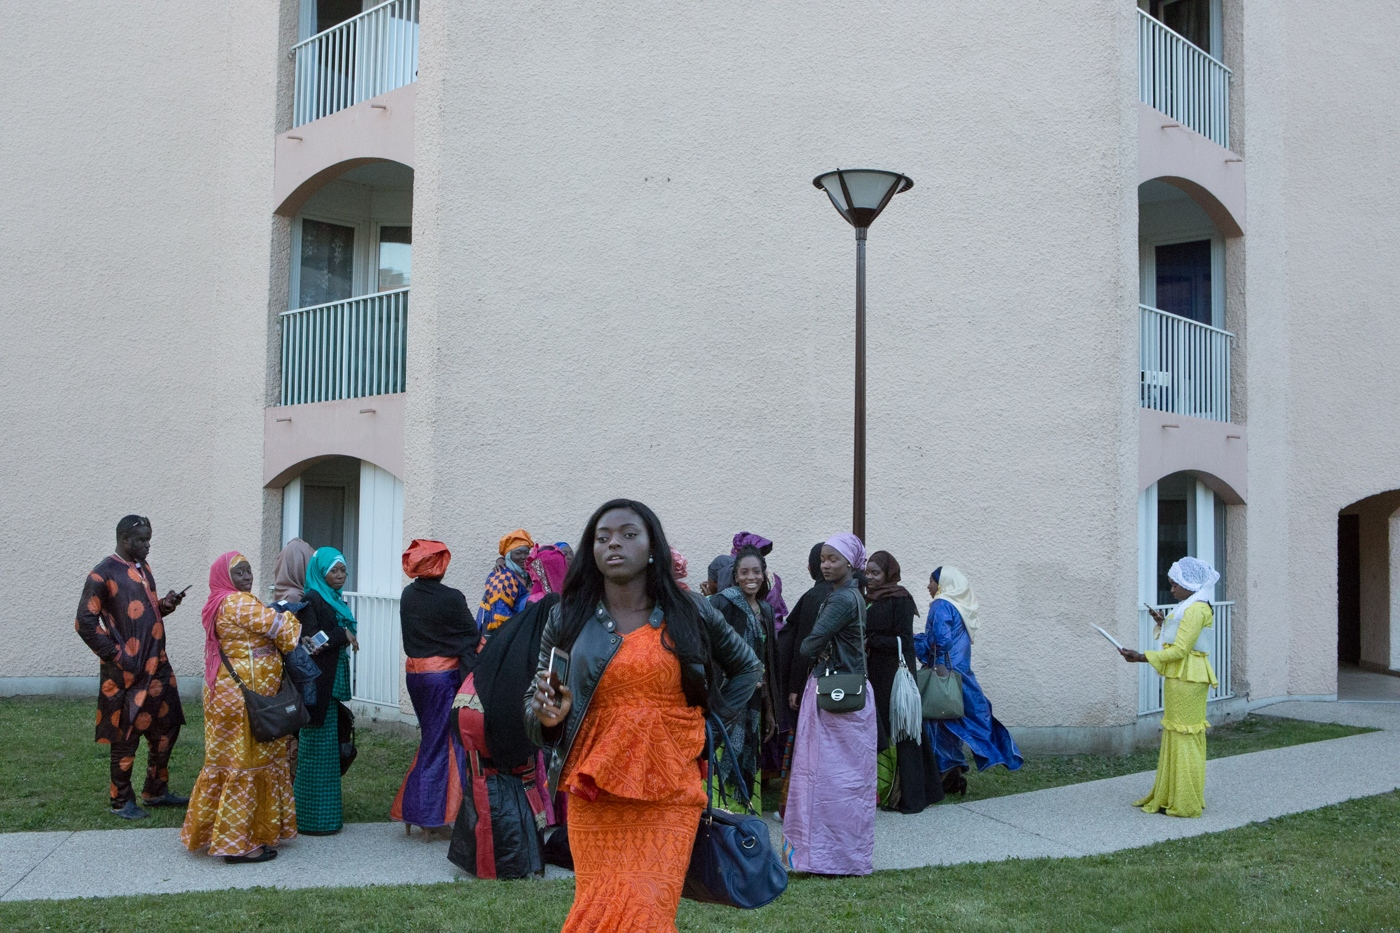 Malian girls celebrating a wedding party at the building yard. Weddings are quite important for what means celebrating a traditional ritual from the parents origin. Each country and each ethnic origin has its own way, music and religious way of celebrating this tradition. Deuil-la-Barre, Ile de France